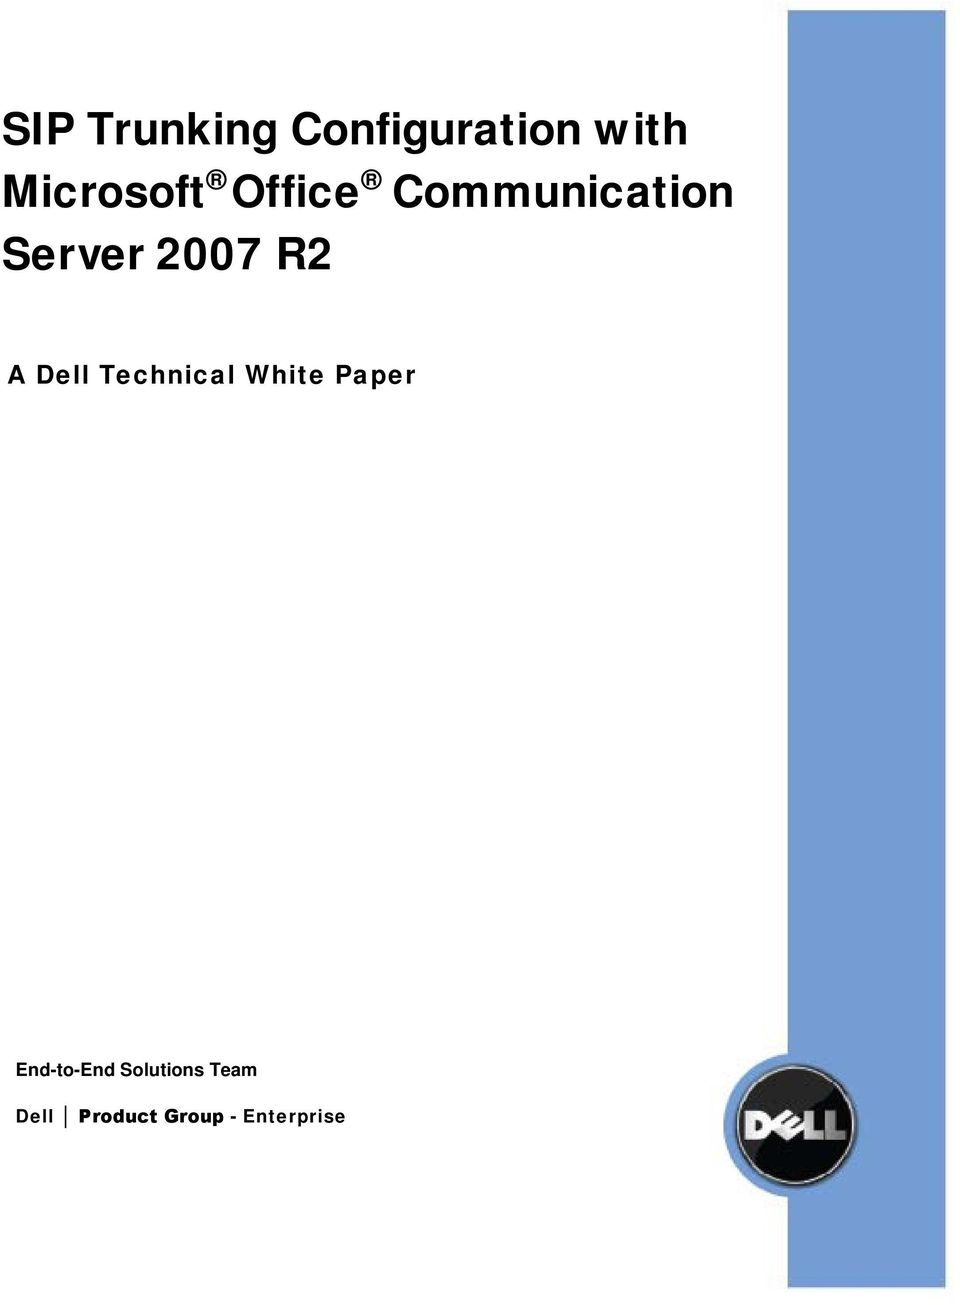 2007 R2 A Dell Technical White Paper